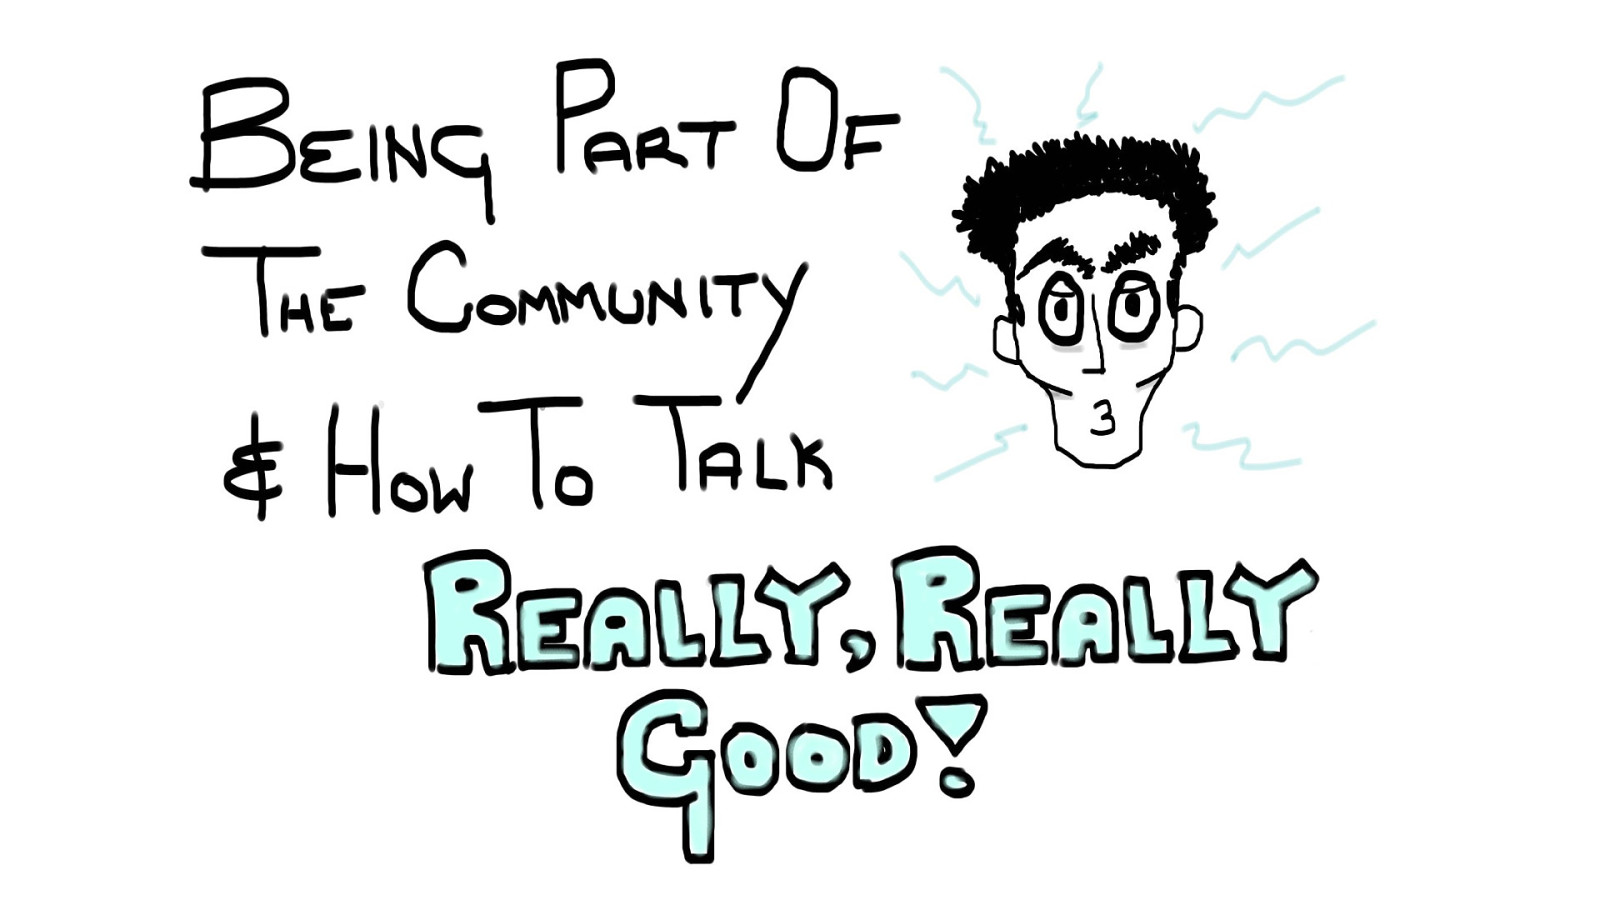 Being part of the community and how to talk really, really good.